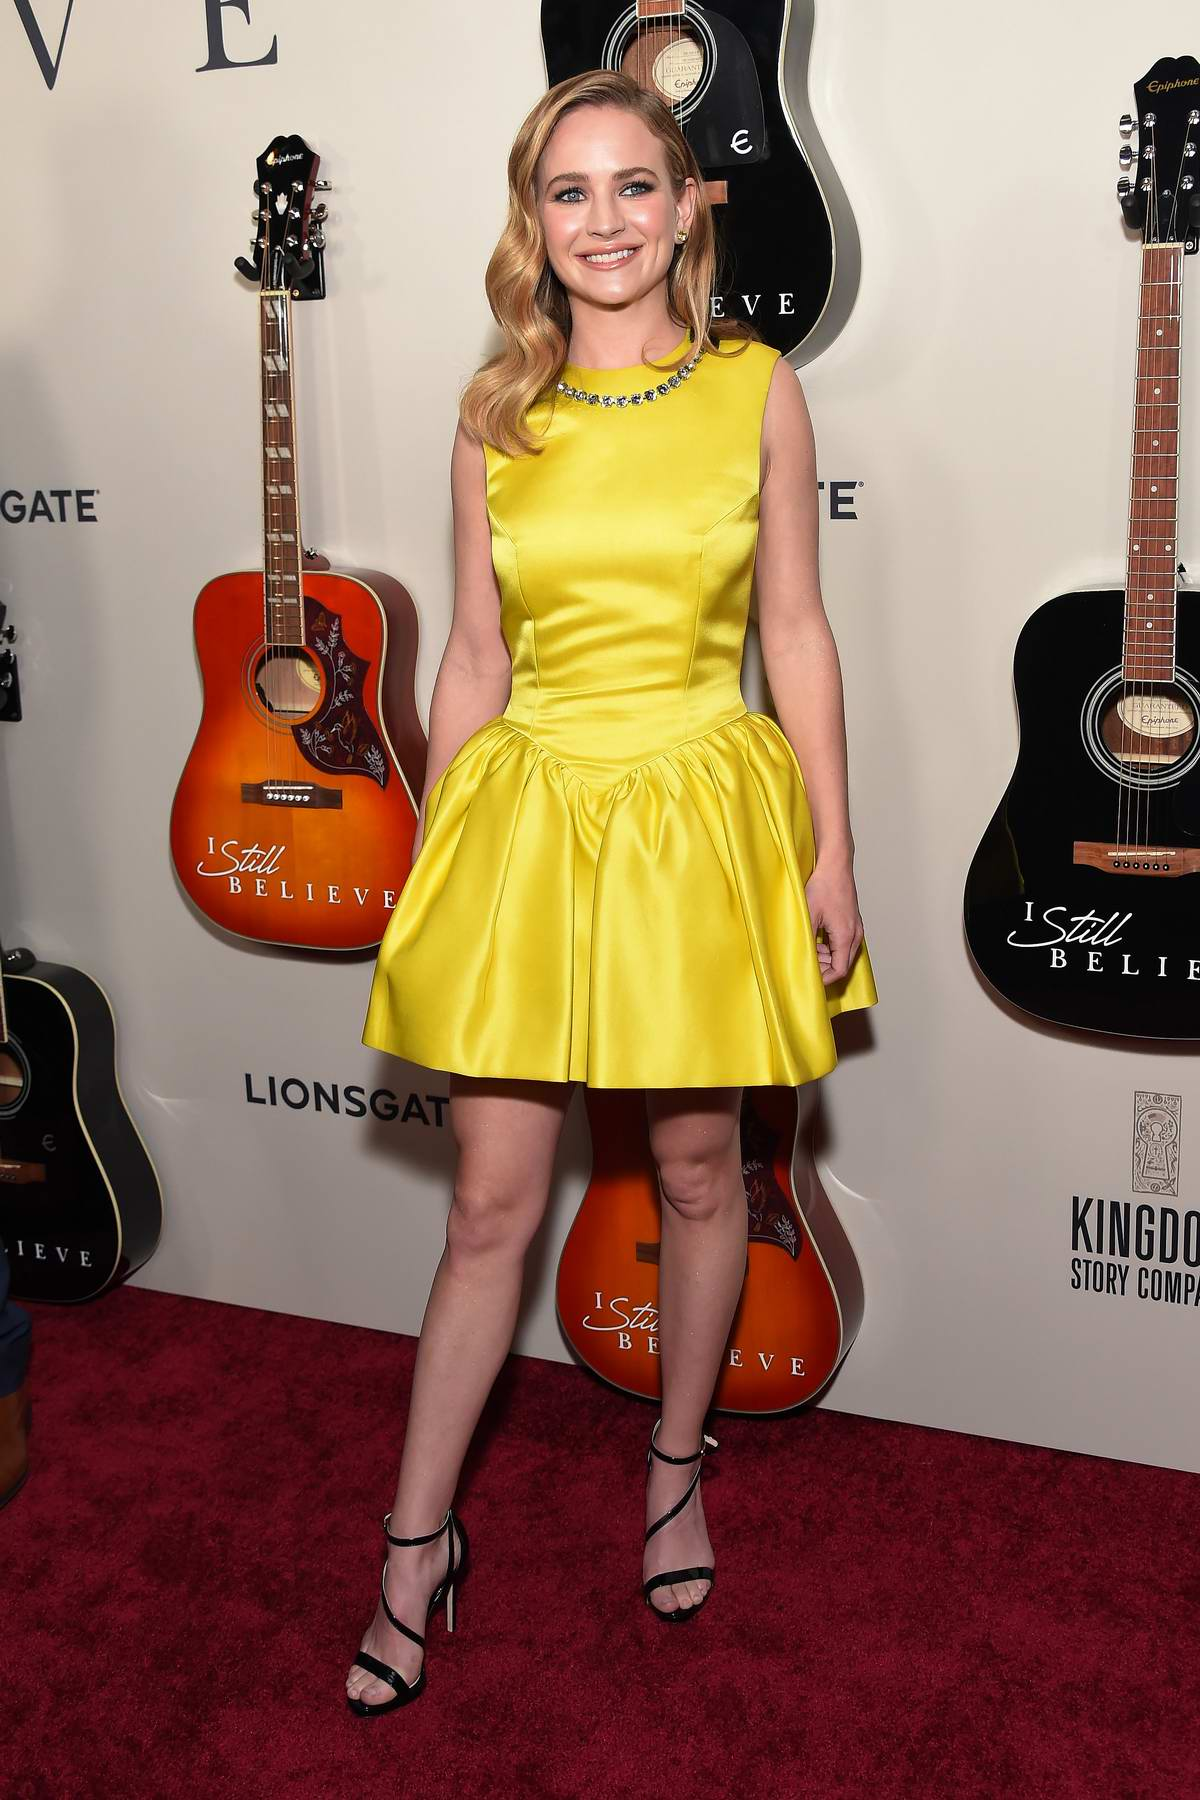 Britt Robertson attends the Premiere of Lionsgate's 'I Still Believe' in Hollywood, California